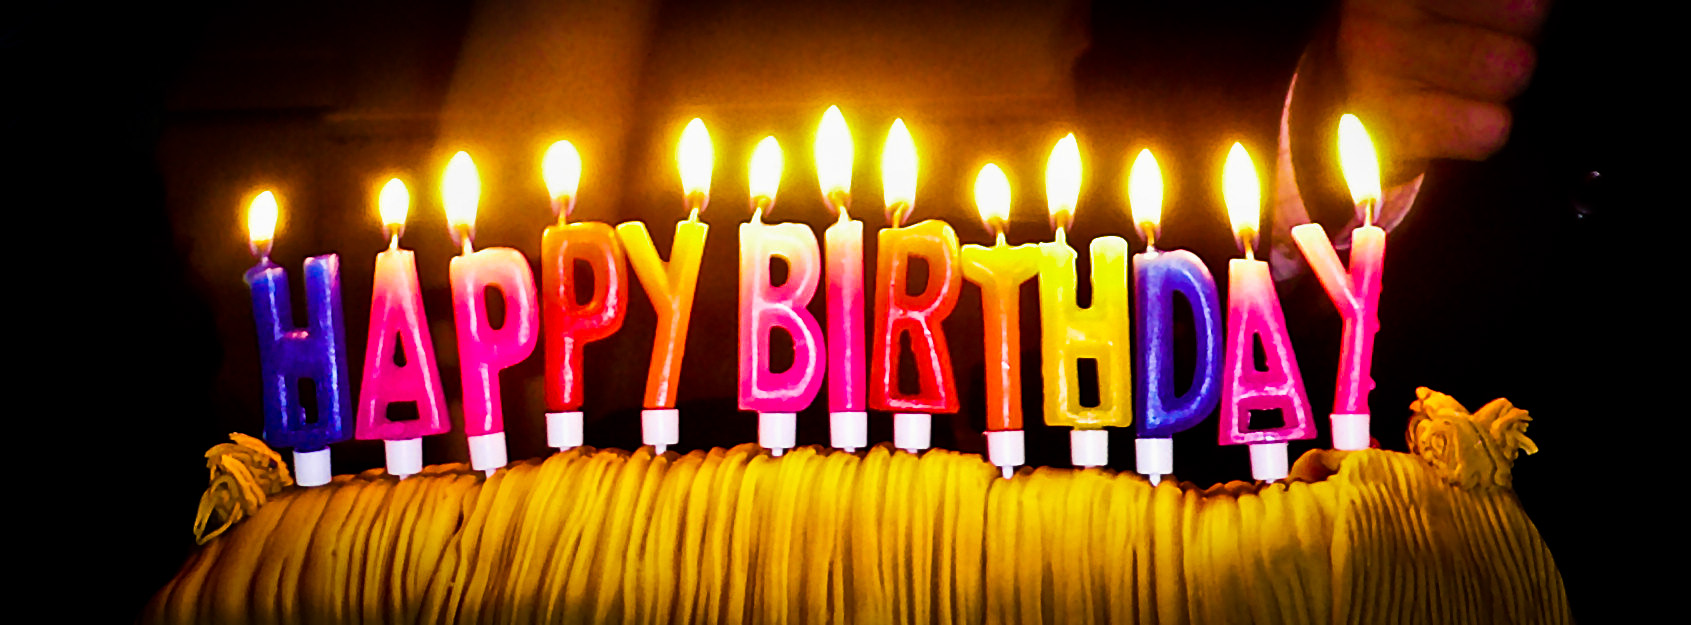 Animated Happy Birthday Pictures   Desktop Backgrounds 1691x625